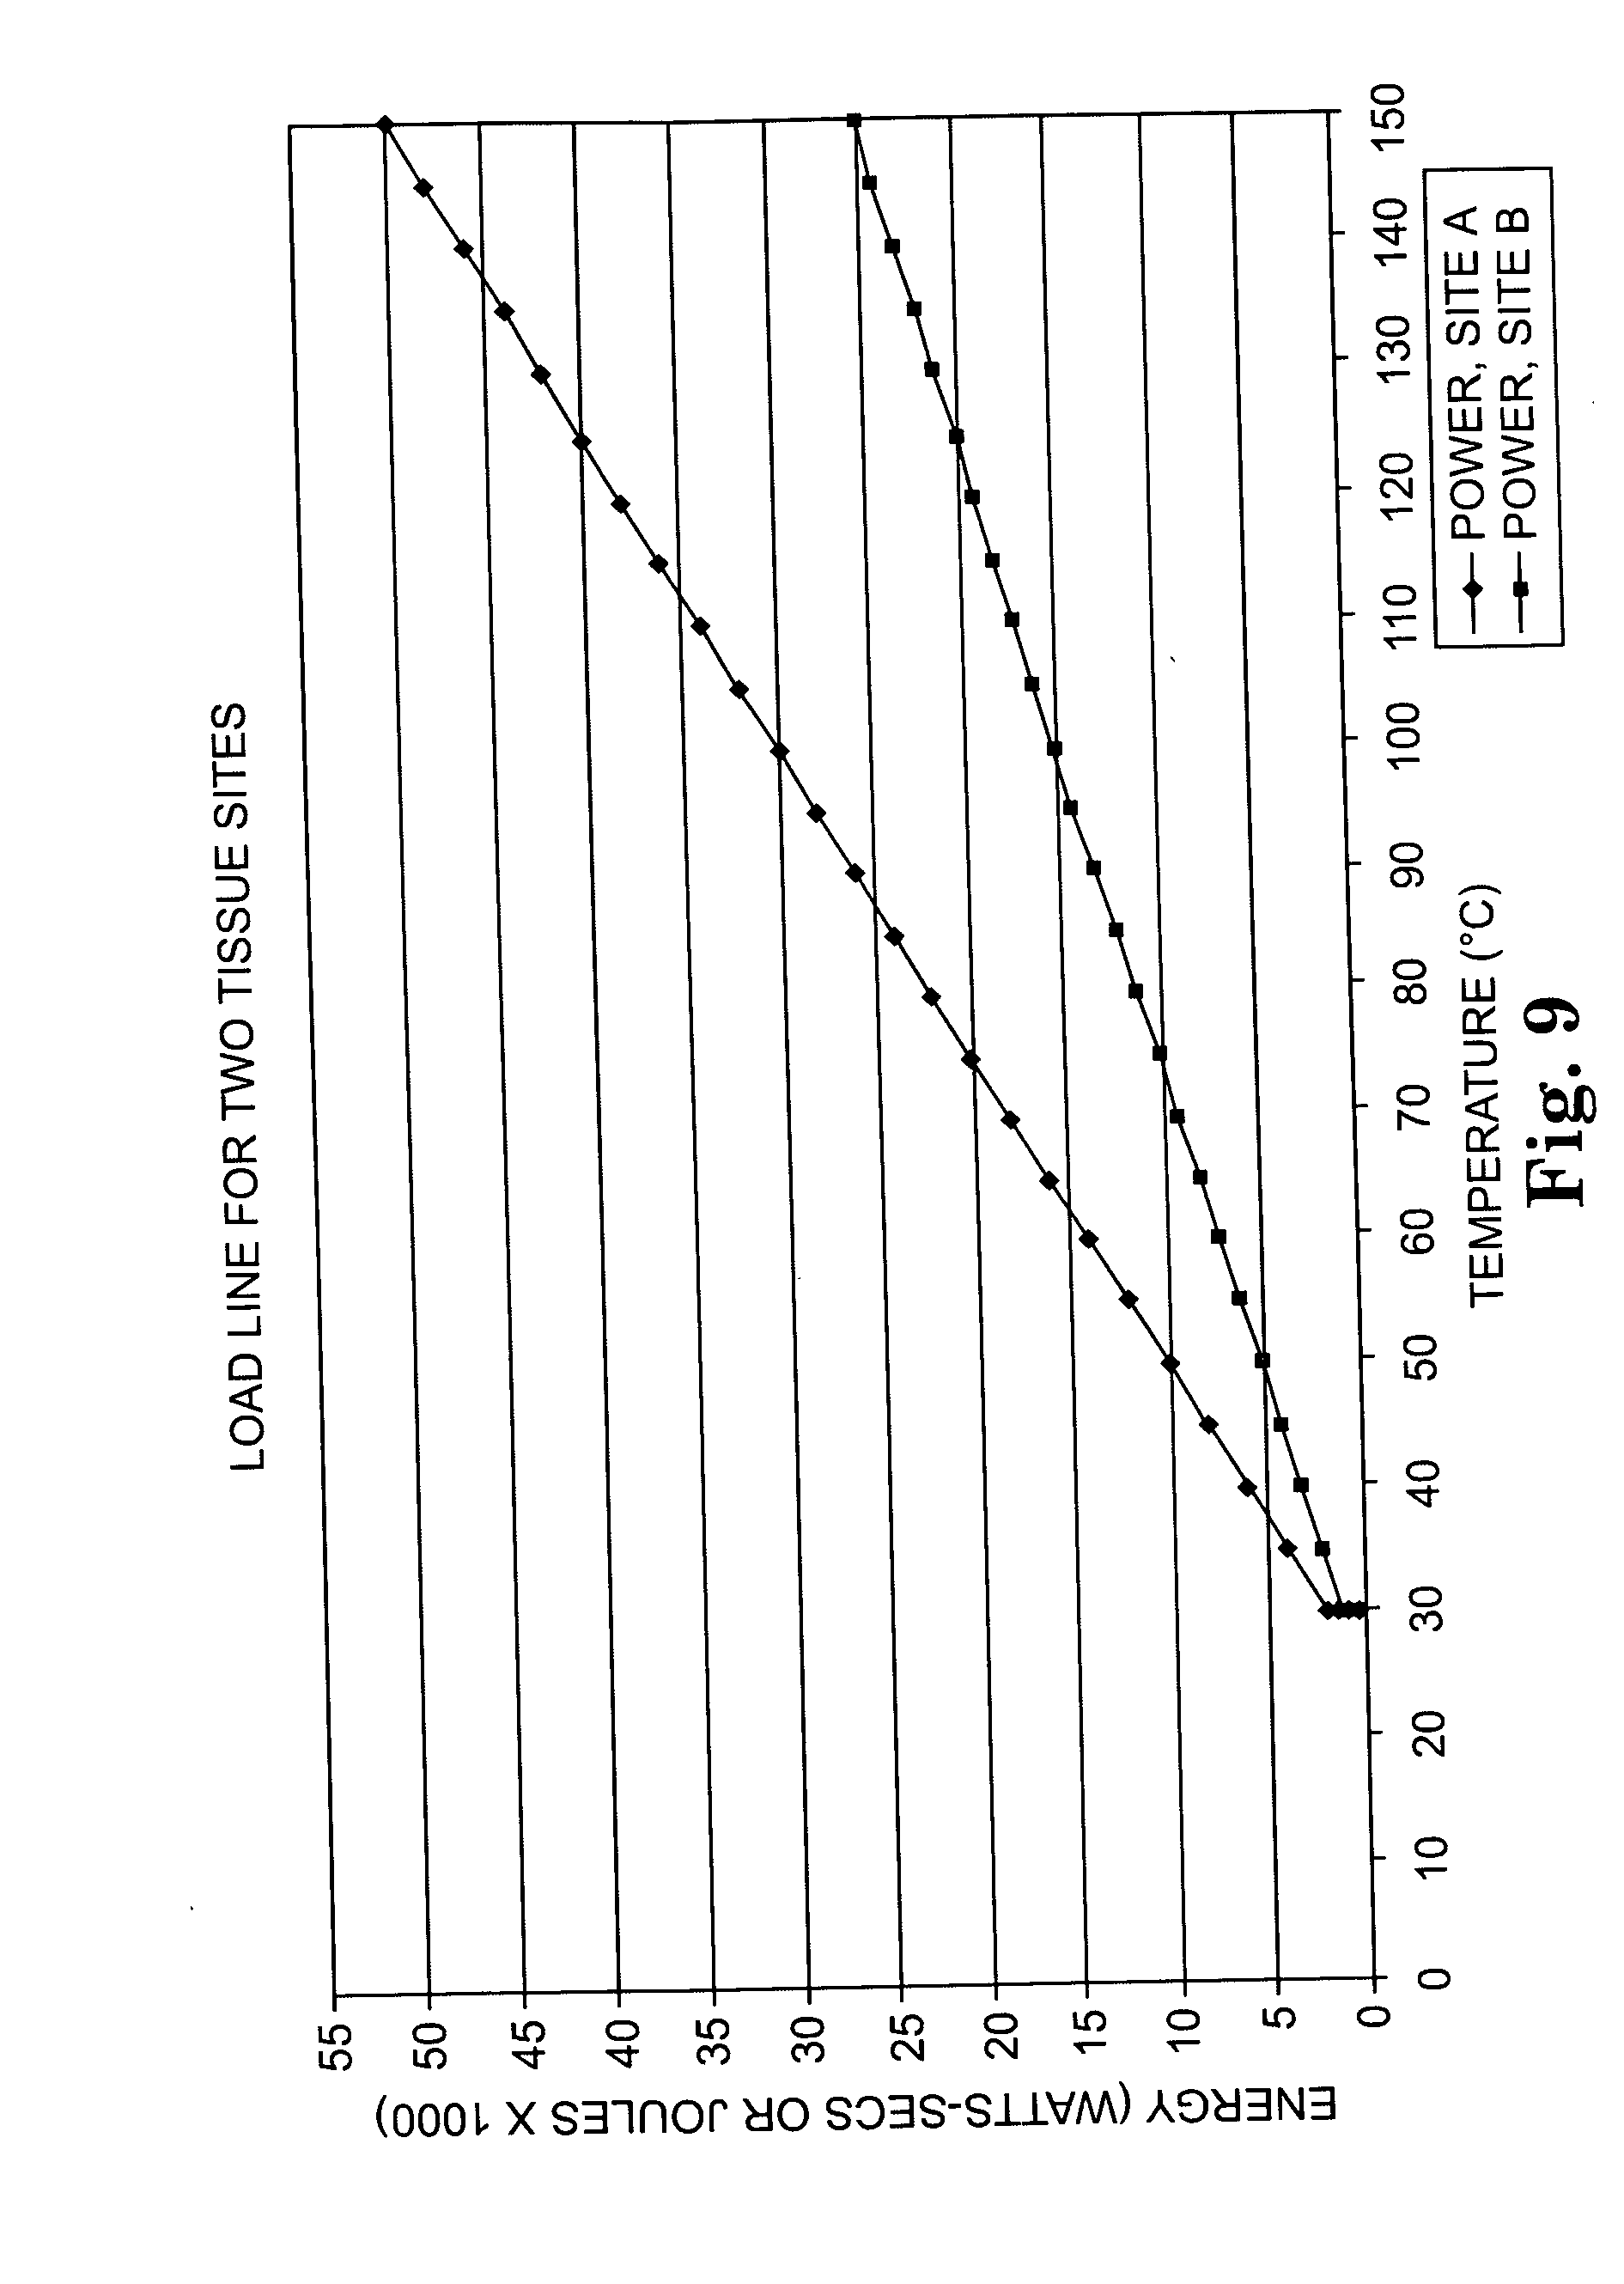 US20090125011 together with US6936047 additionally Rf Generators additionally COSMAN together with US20050085804. on of radio frequency lesion generator